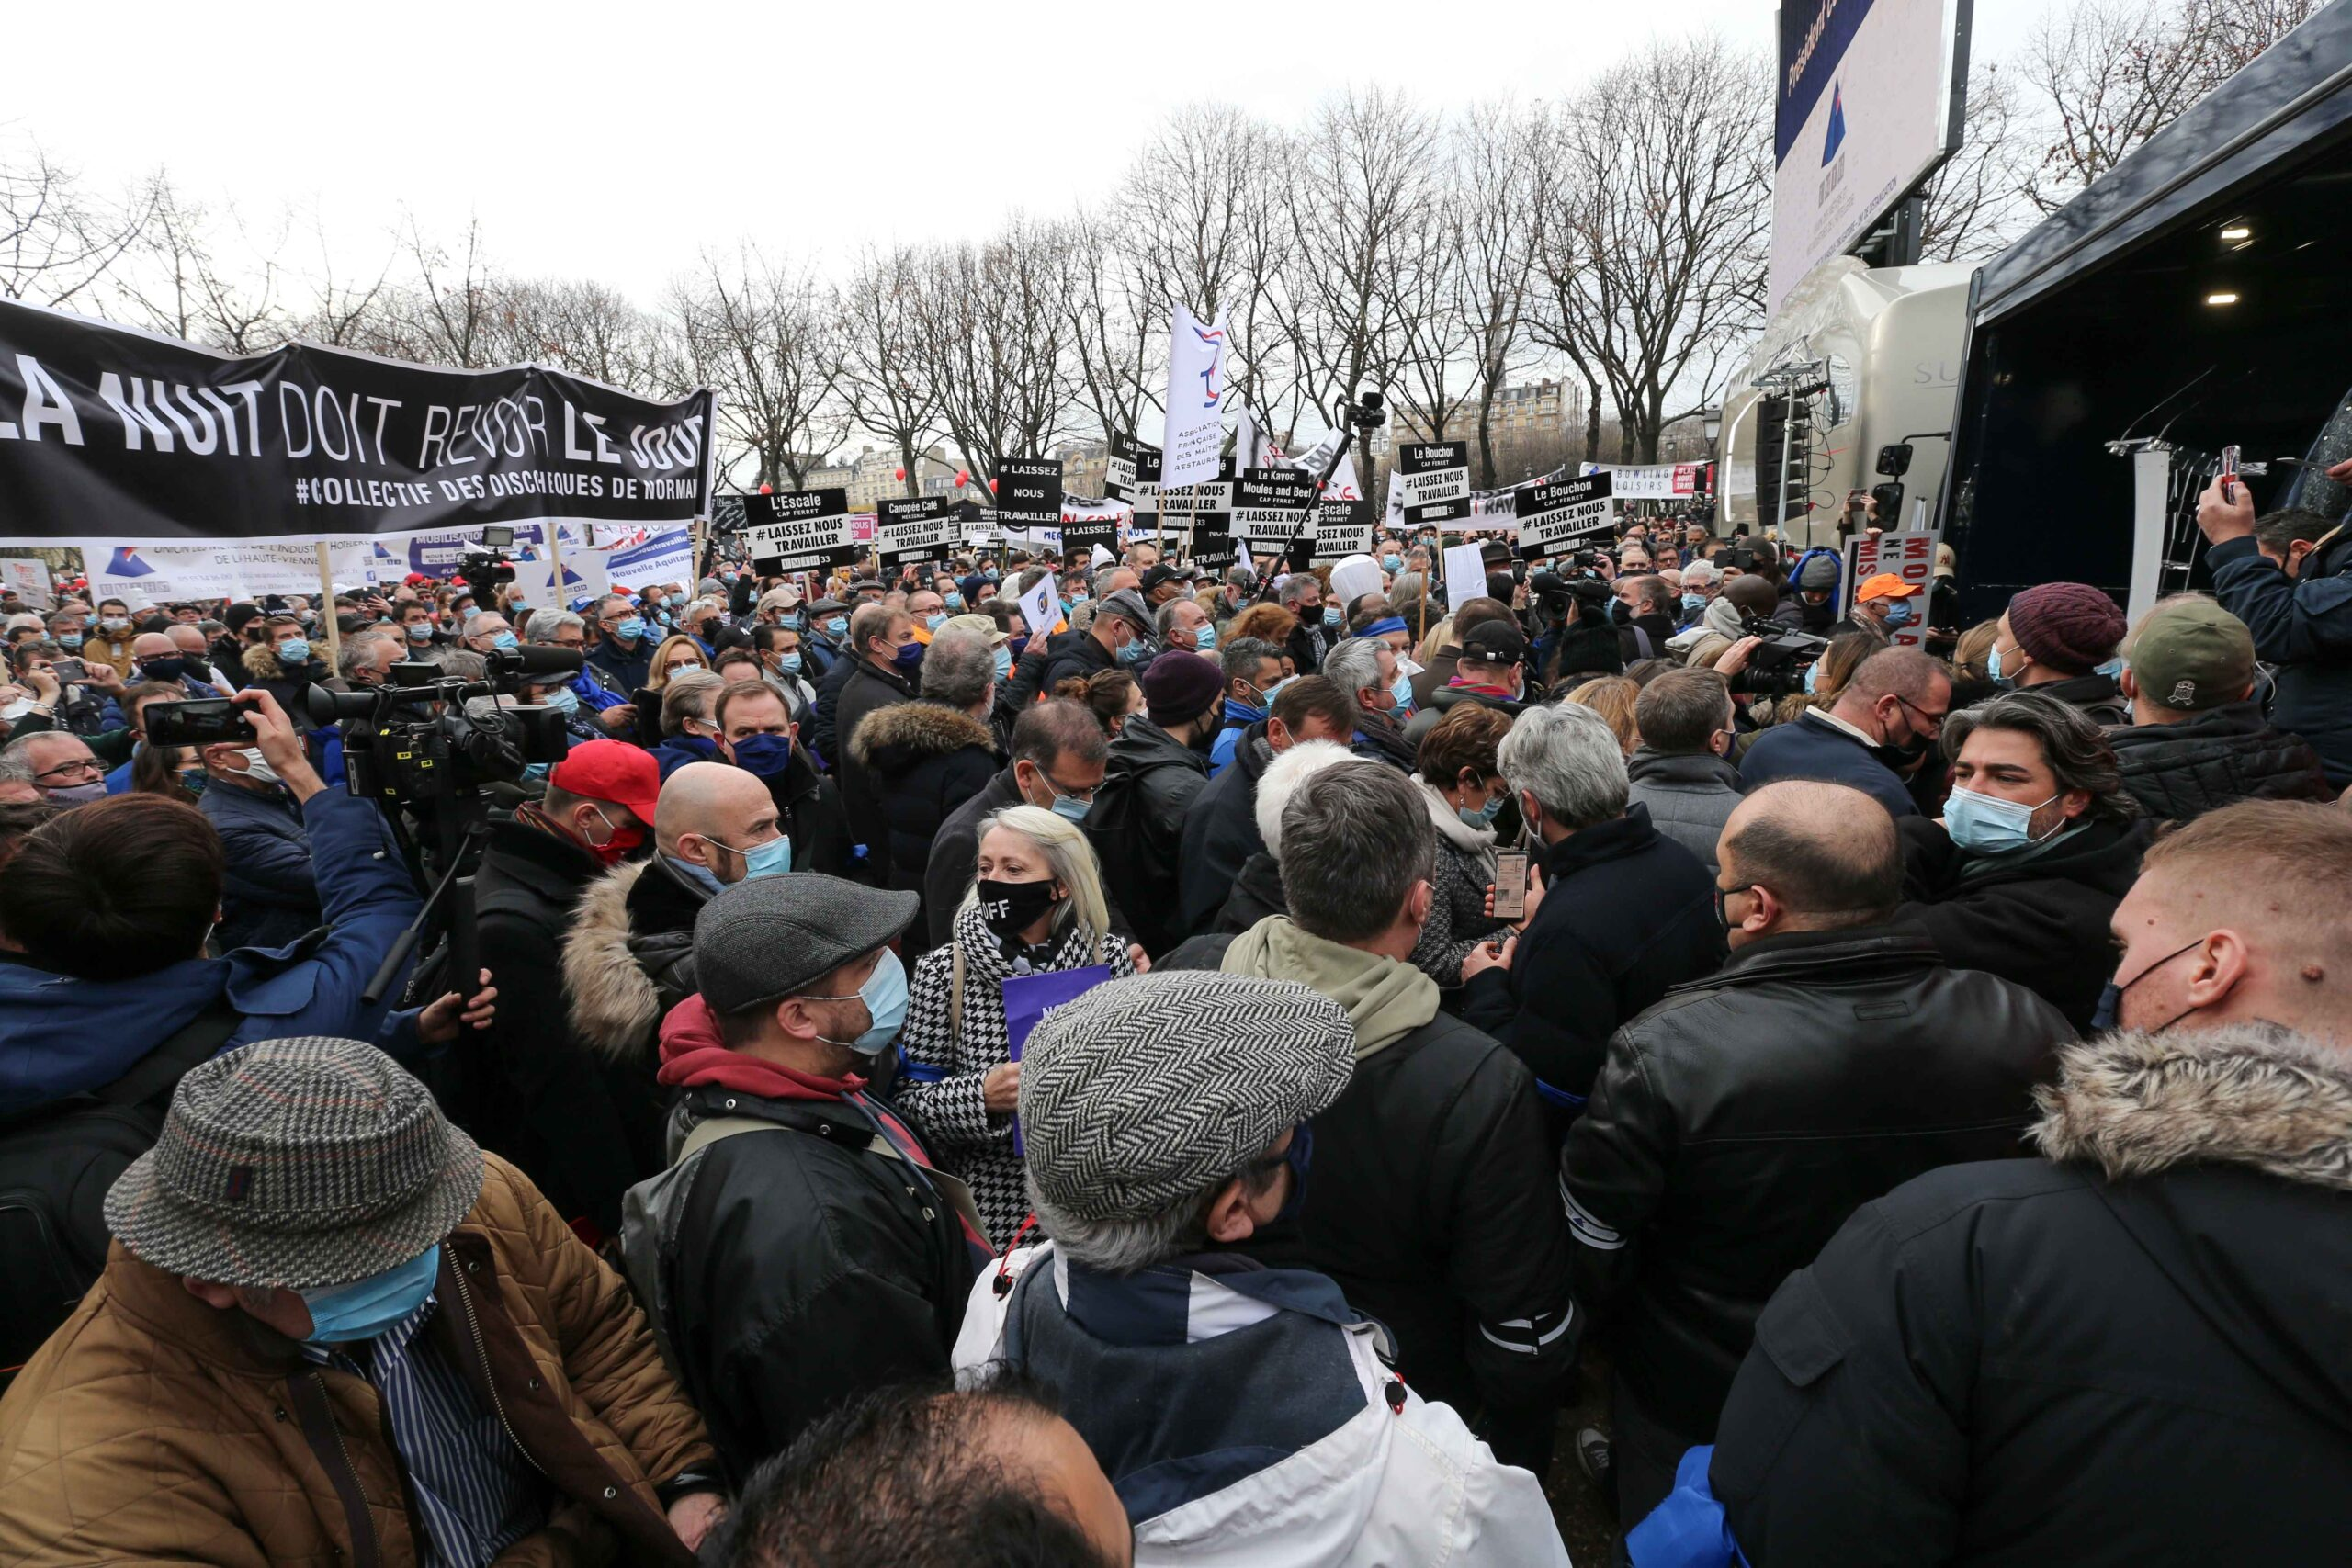 Protesters hold placards and banners on December 14, 2020 in Paris during a demonstration of hotel and restaurant owners as well as tourism professionals to demand their businesses to reopen amidst the Covid-19 pandemic, caused by the novel coronavirus.